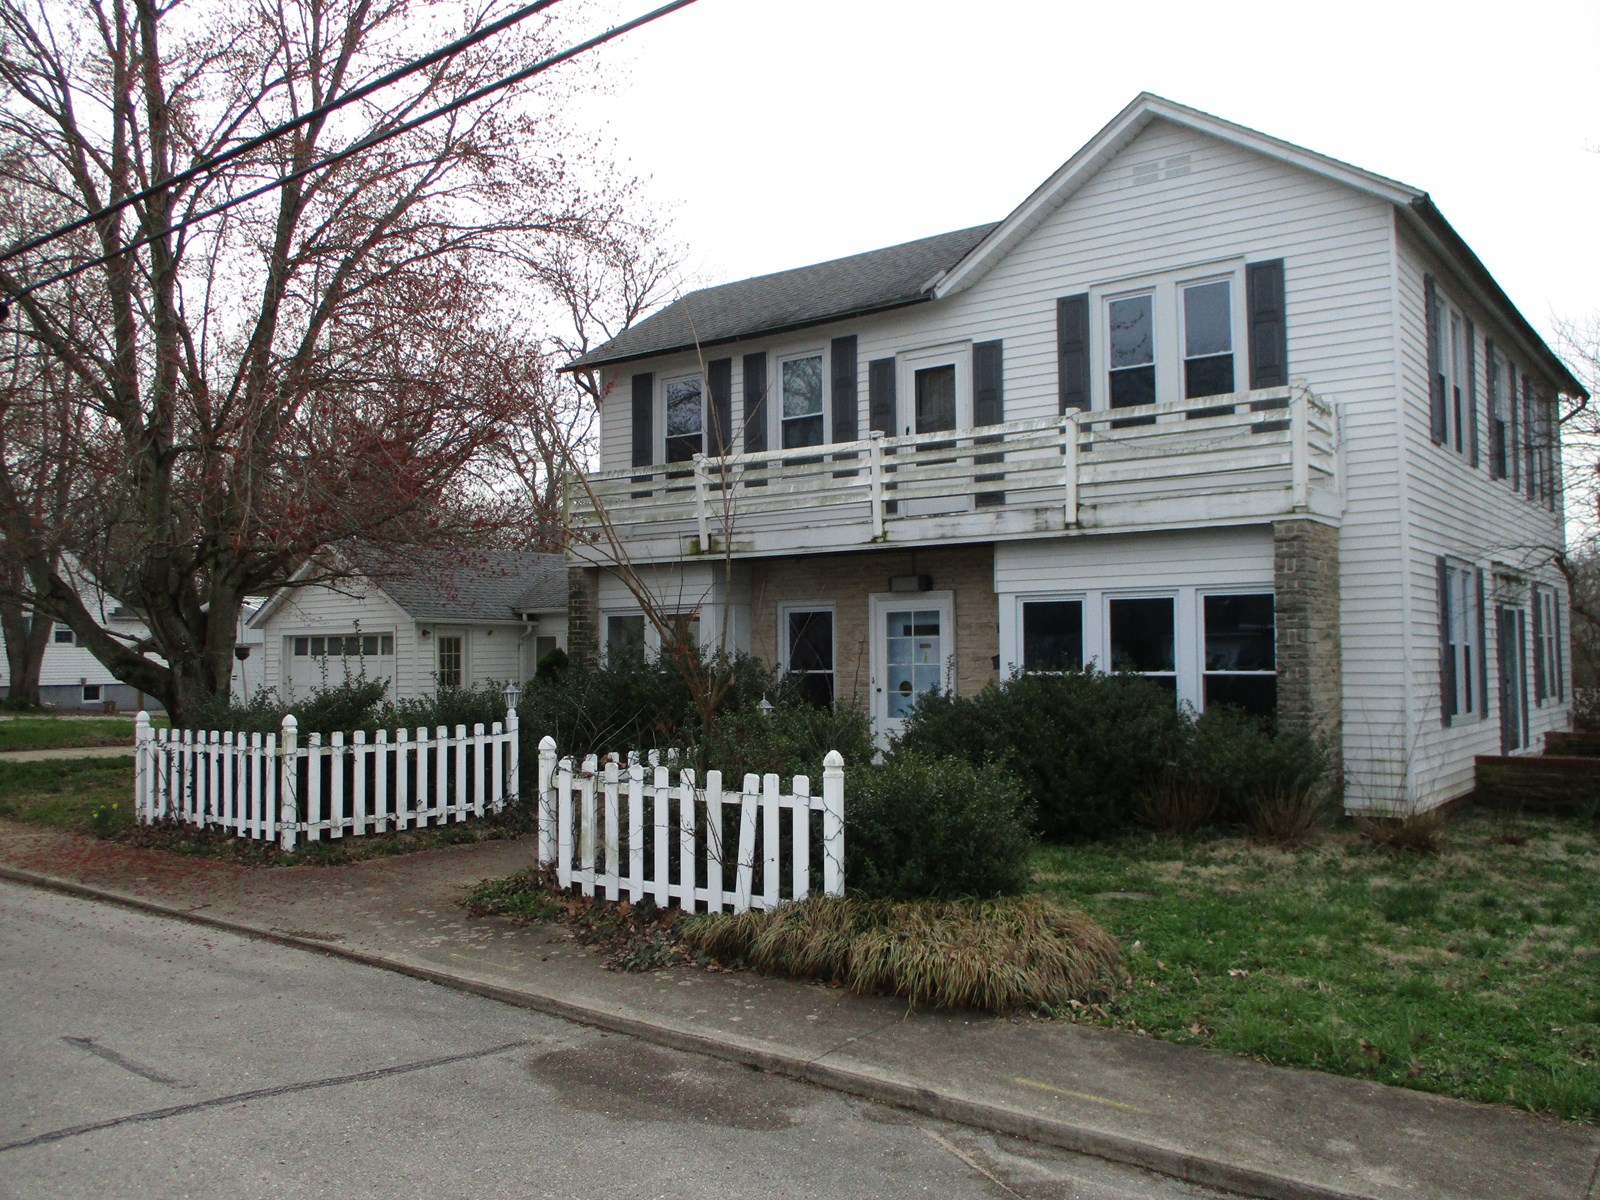 Looking for a Fixer Upper?  This 3 bedroom home is for you!